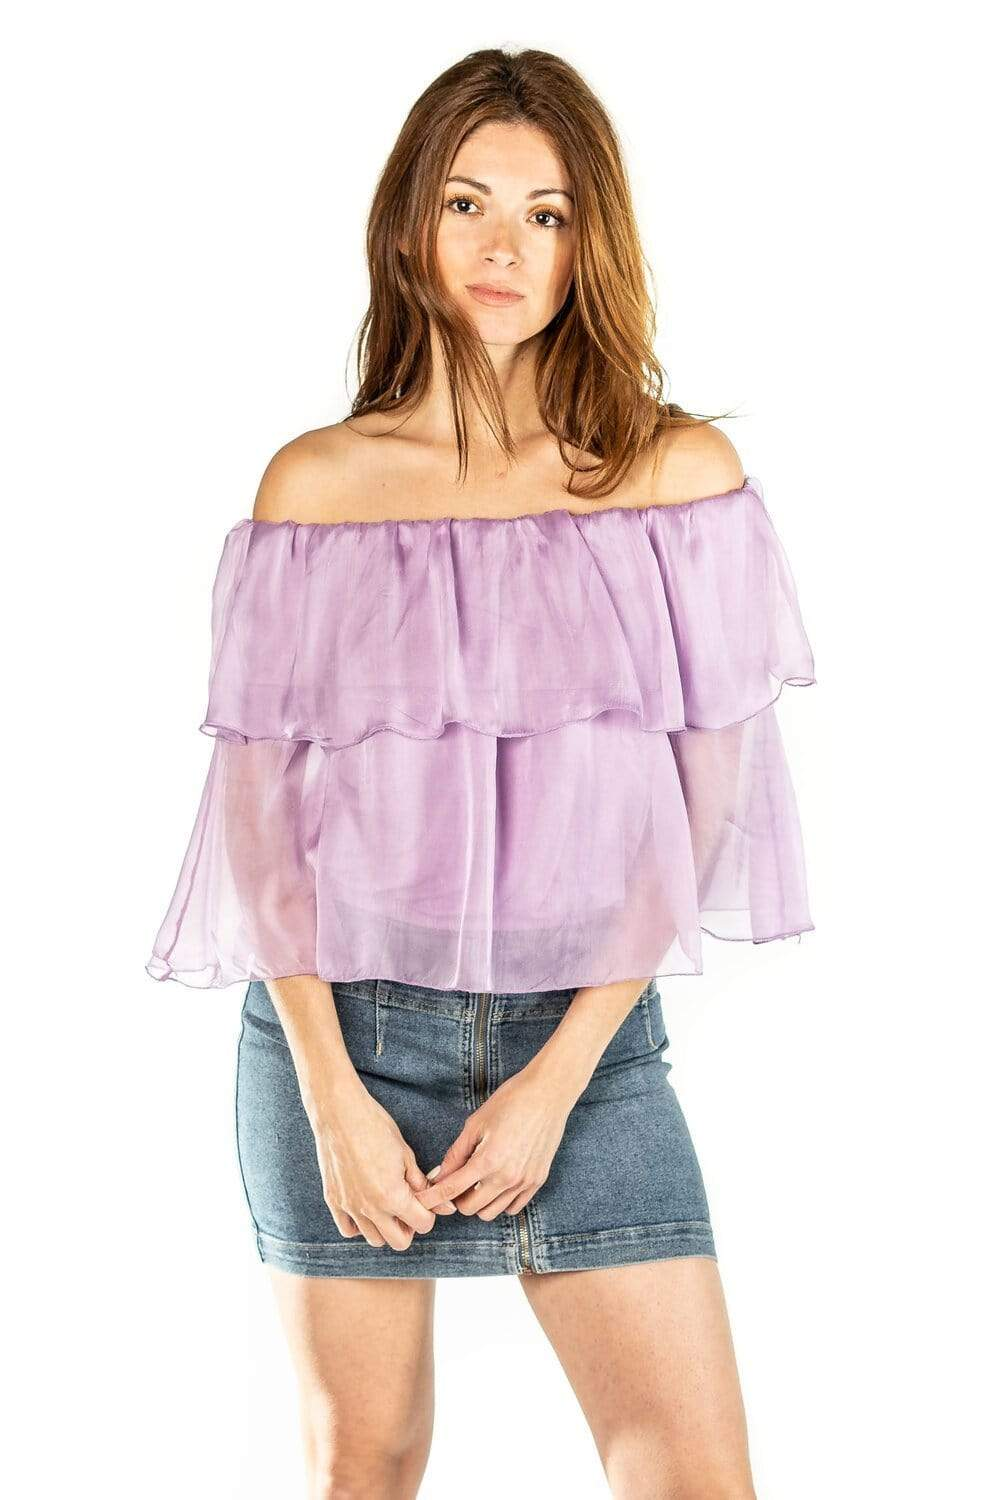 shop-sofia Chloe Ruffle Top Sofia Collections Italian Silk Linen Satin